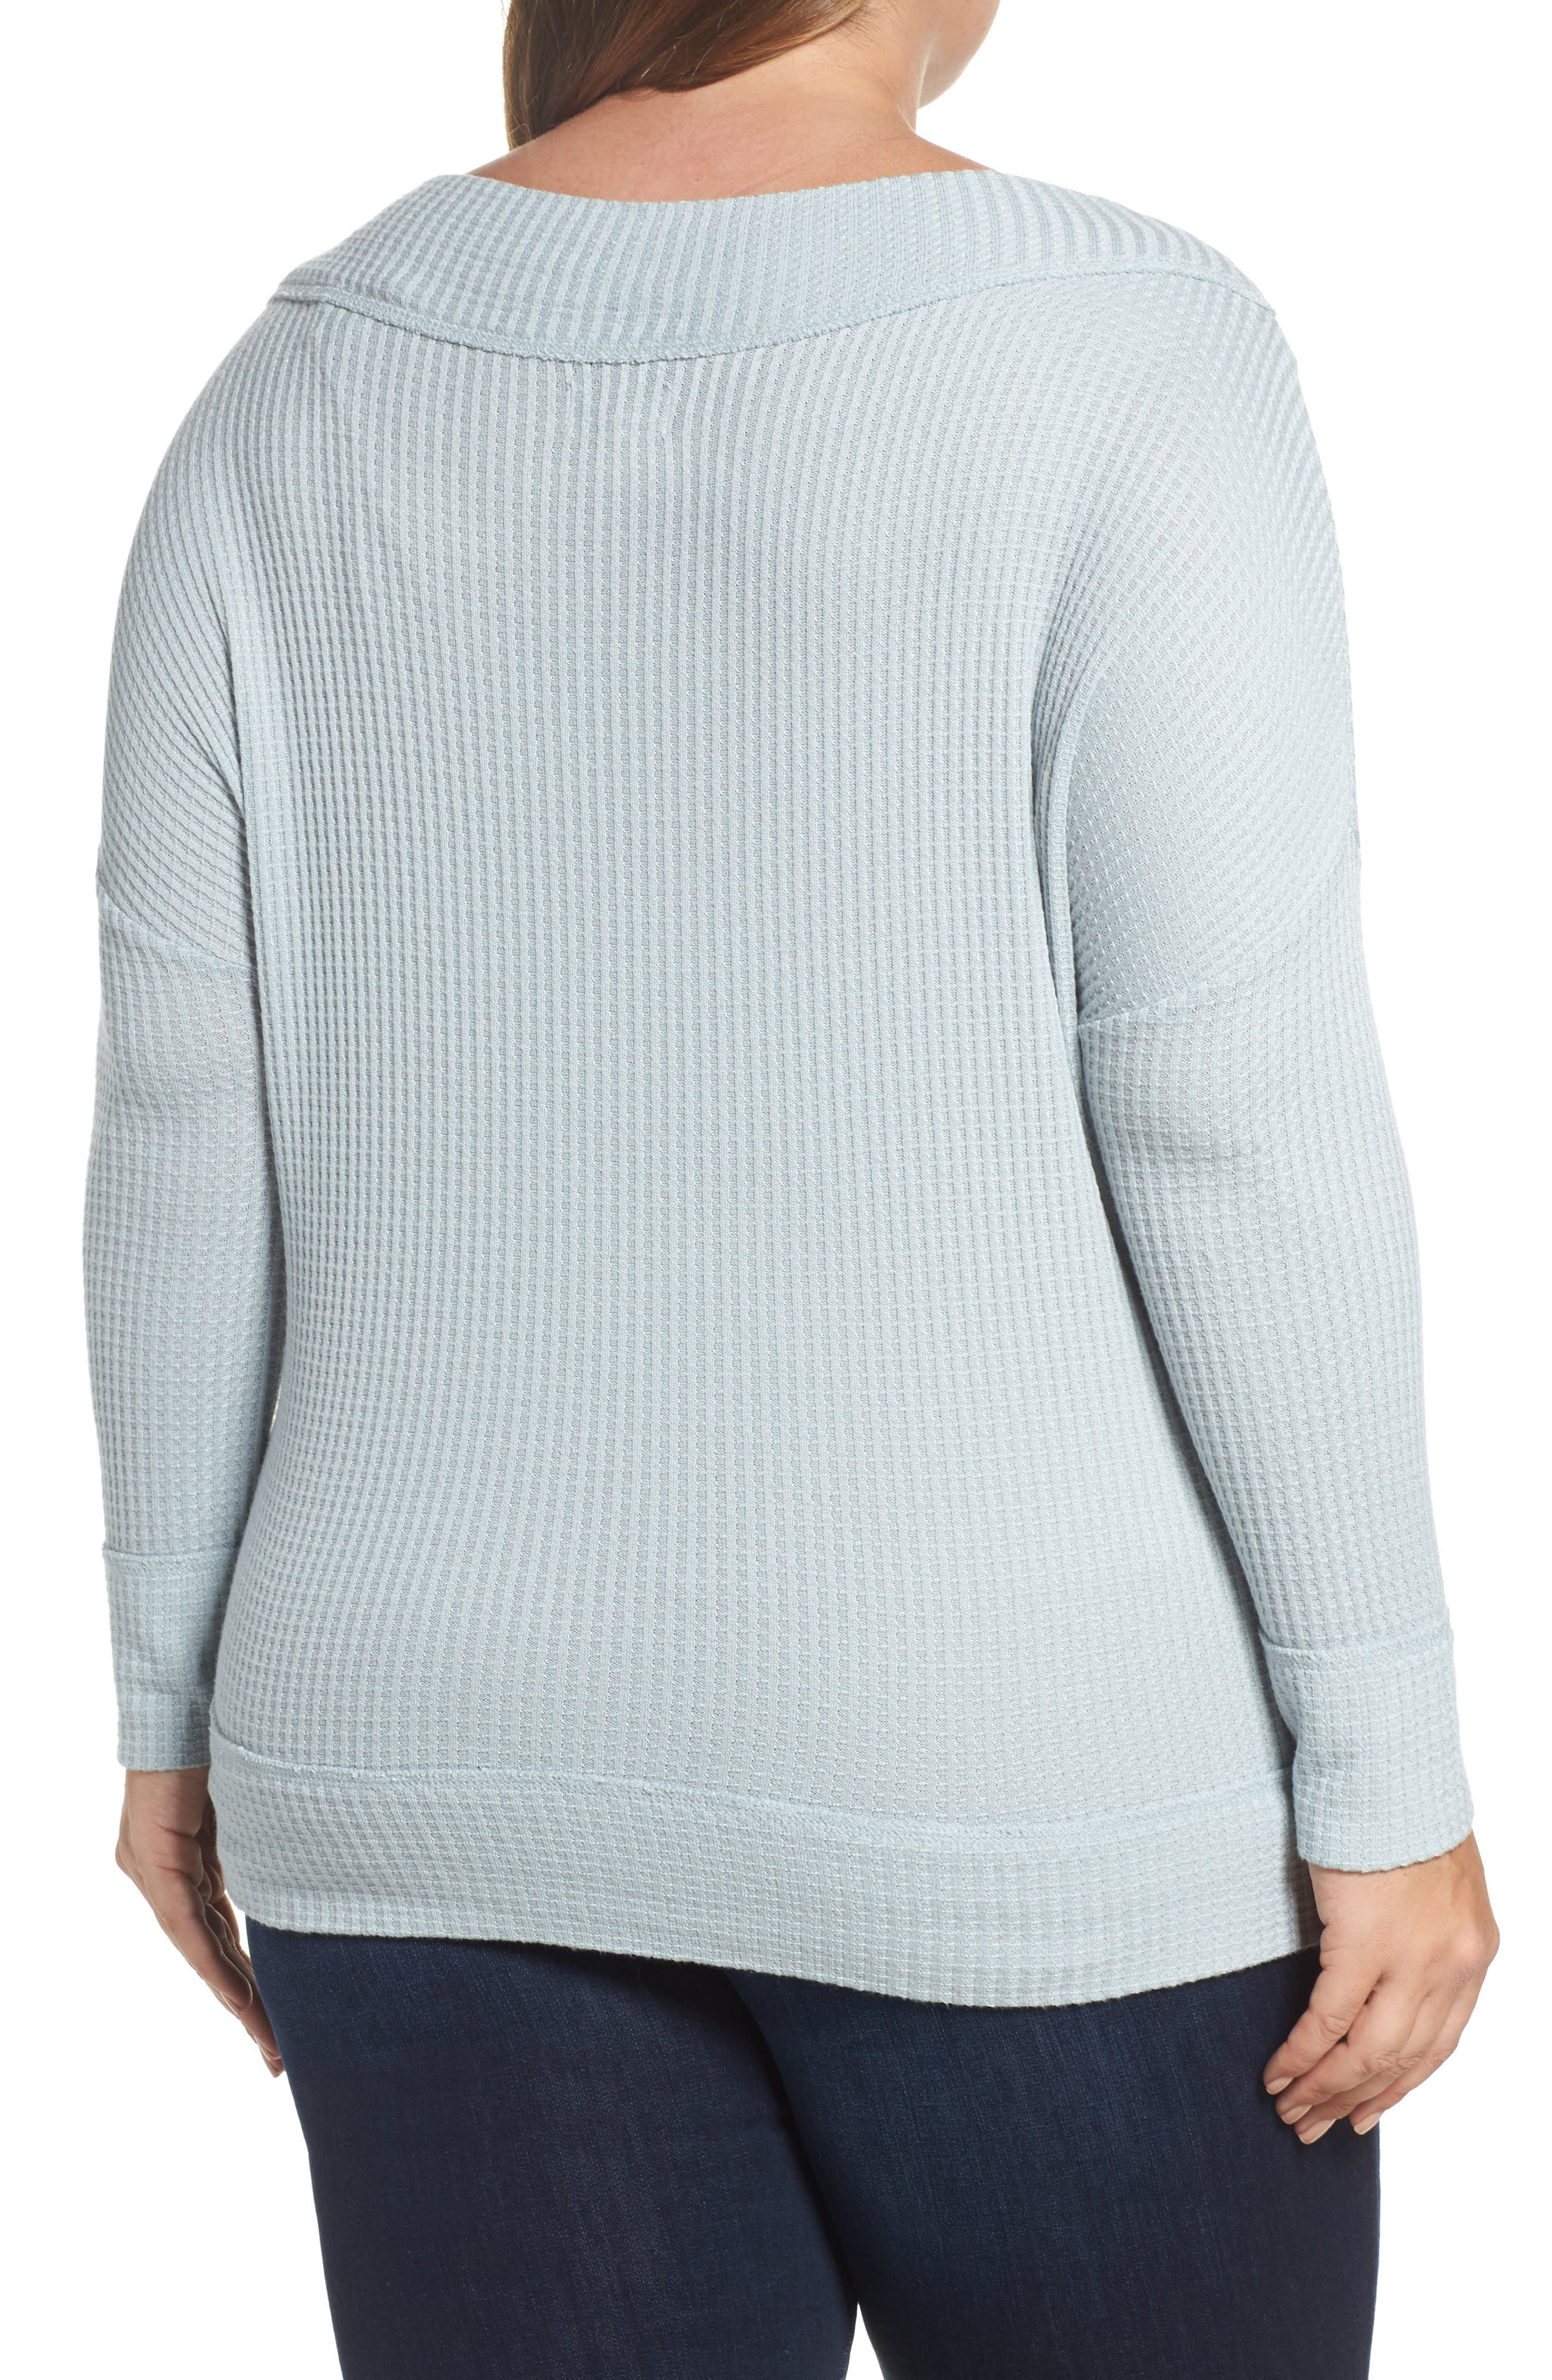 Alternate Image 2  - Lucky Brand Waffle Thermal Top (Plus Size)